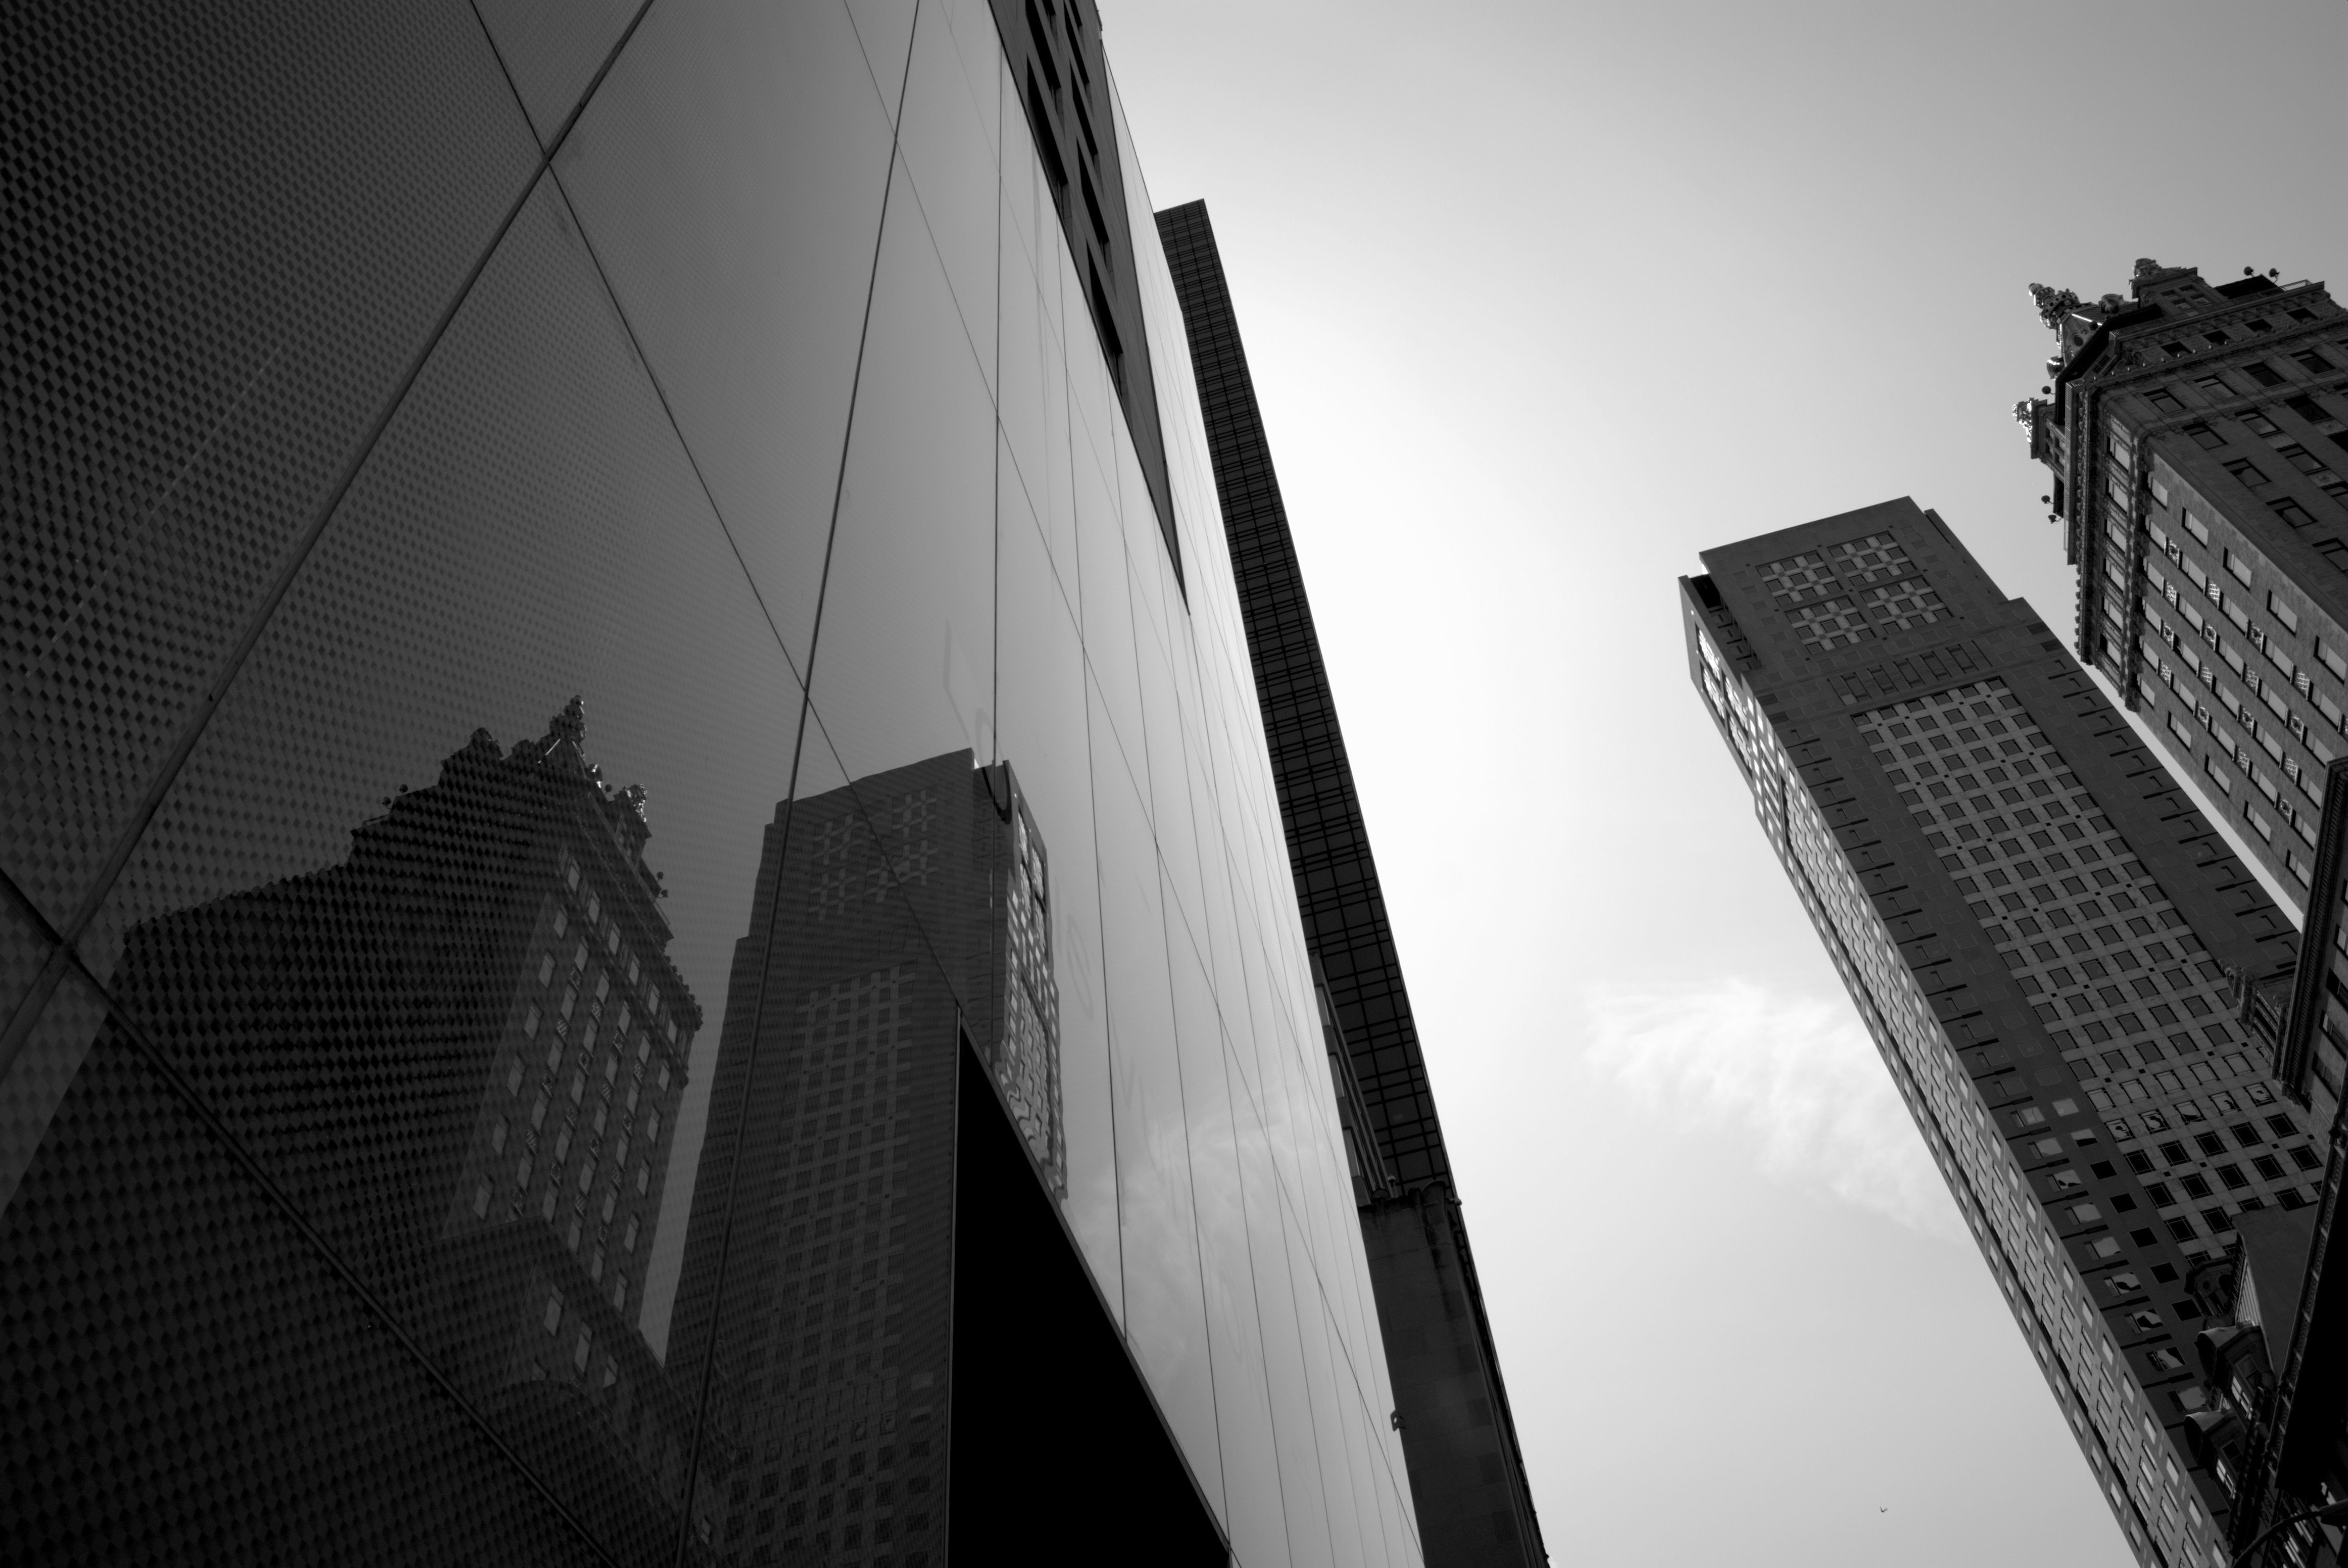 Building Construction Wallpaper Hd Gray Scale Image Of Building 183 Free Stock Photo